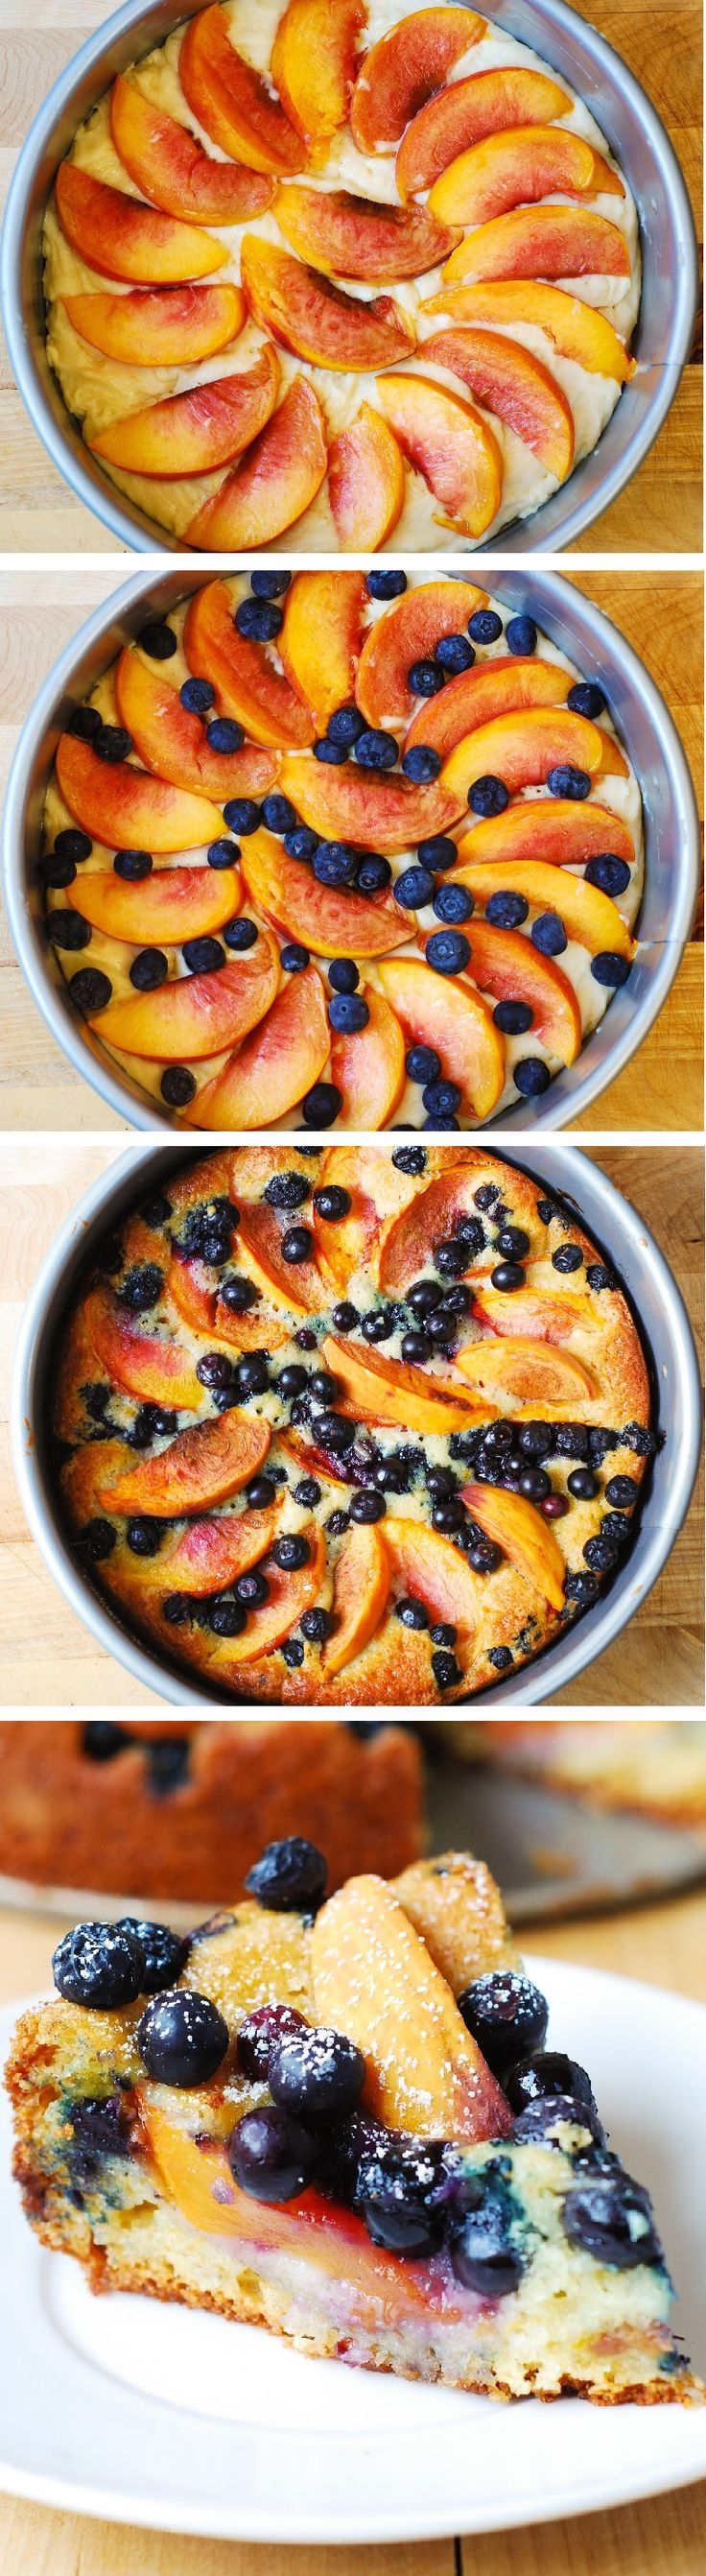 Delicious, light and fluffy Peach Blueberry Greek Yogurt Cake